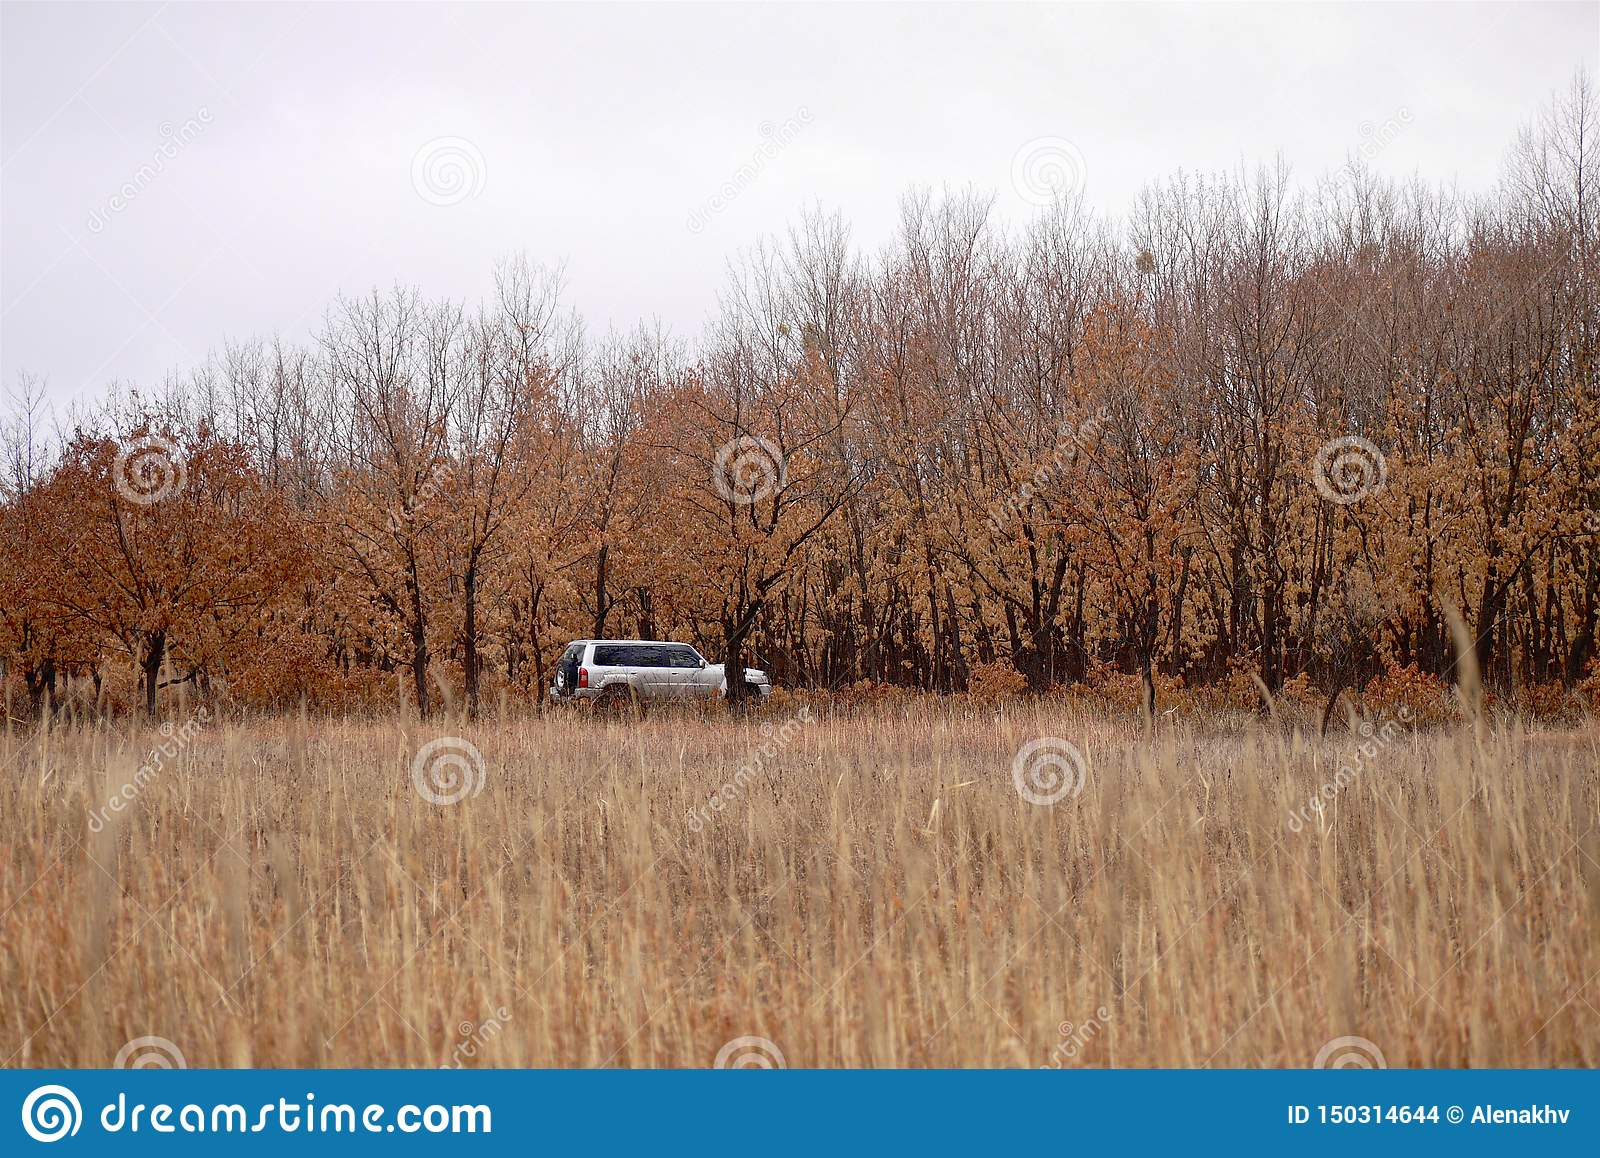 Suv is in the autumn forest in cloudy weather